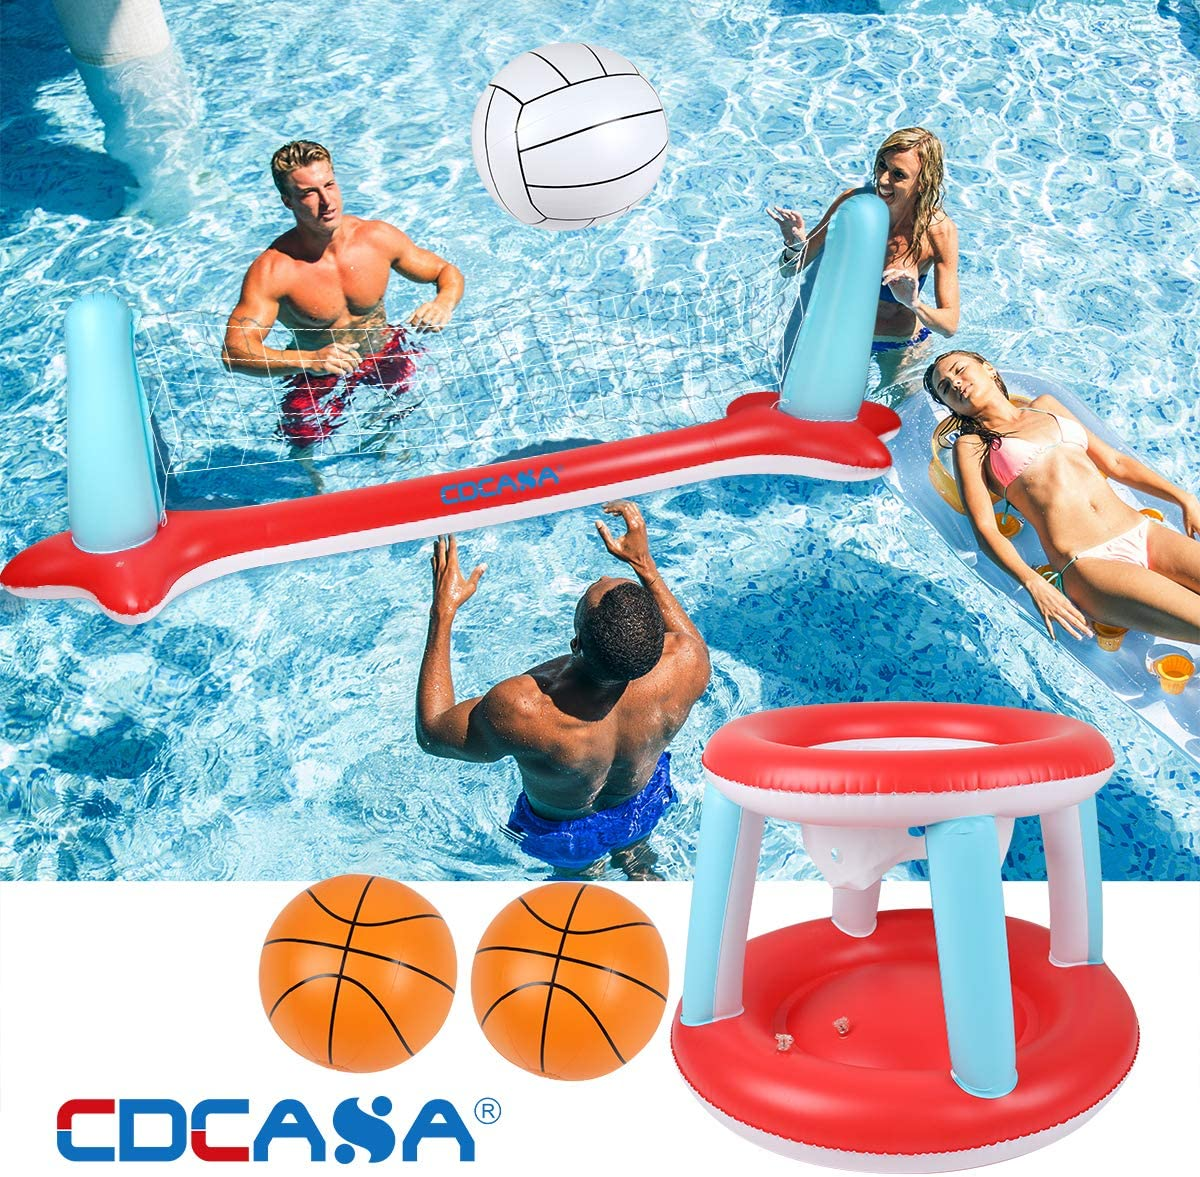 Amazon Com Inflatable Pool Float Set Volleyball Net Basketball Hoops Balls Included For Kids And Adults Swimming Game Toy Floating Summer Floaties Volleyball Court 115 X30 X37 Basketball 29 X22 X29 Toys Games